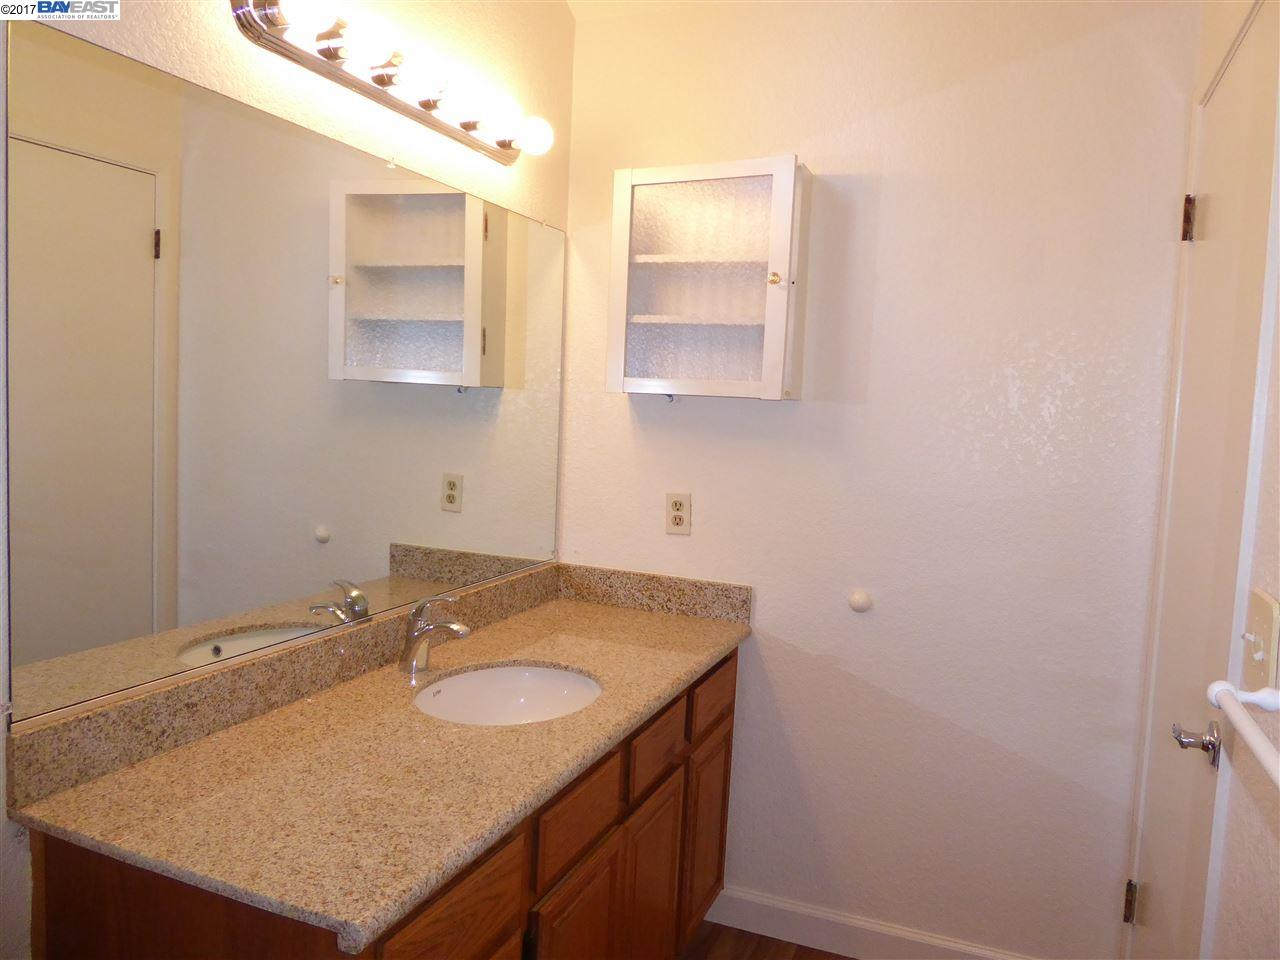 Additional photo for property listing at 4123 Lethram Court  Pleasanton, California 94588 United States